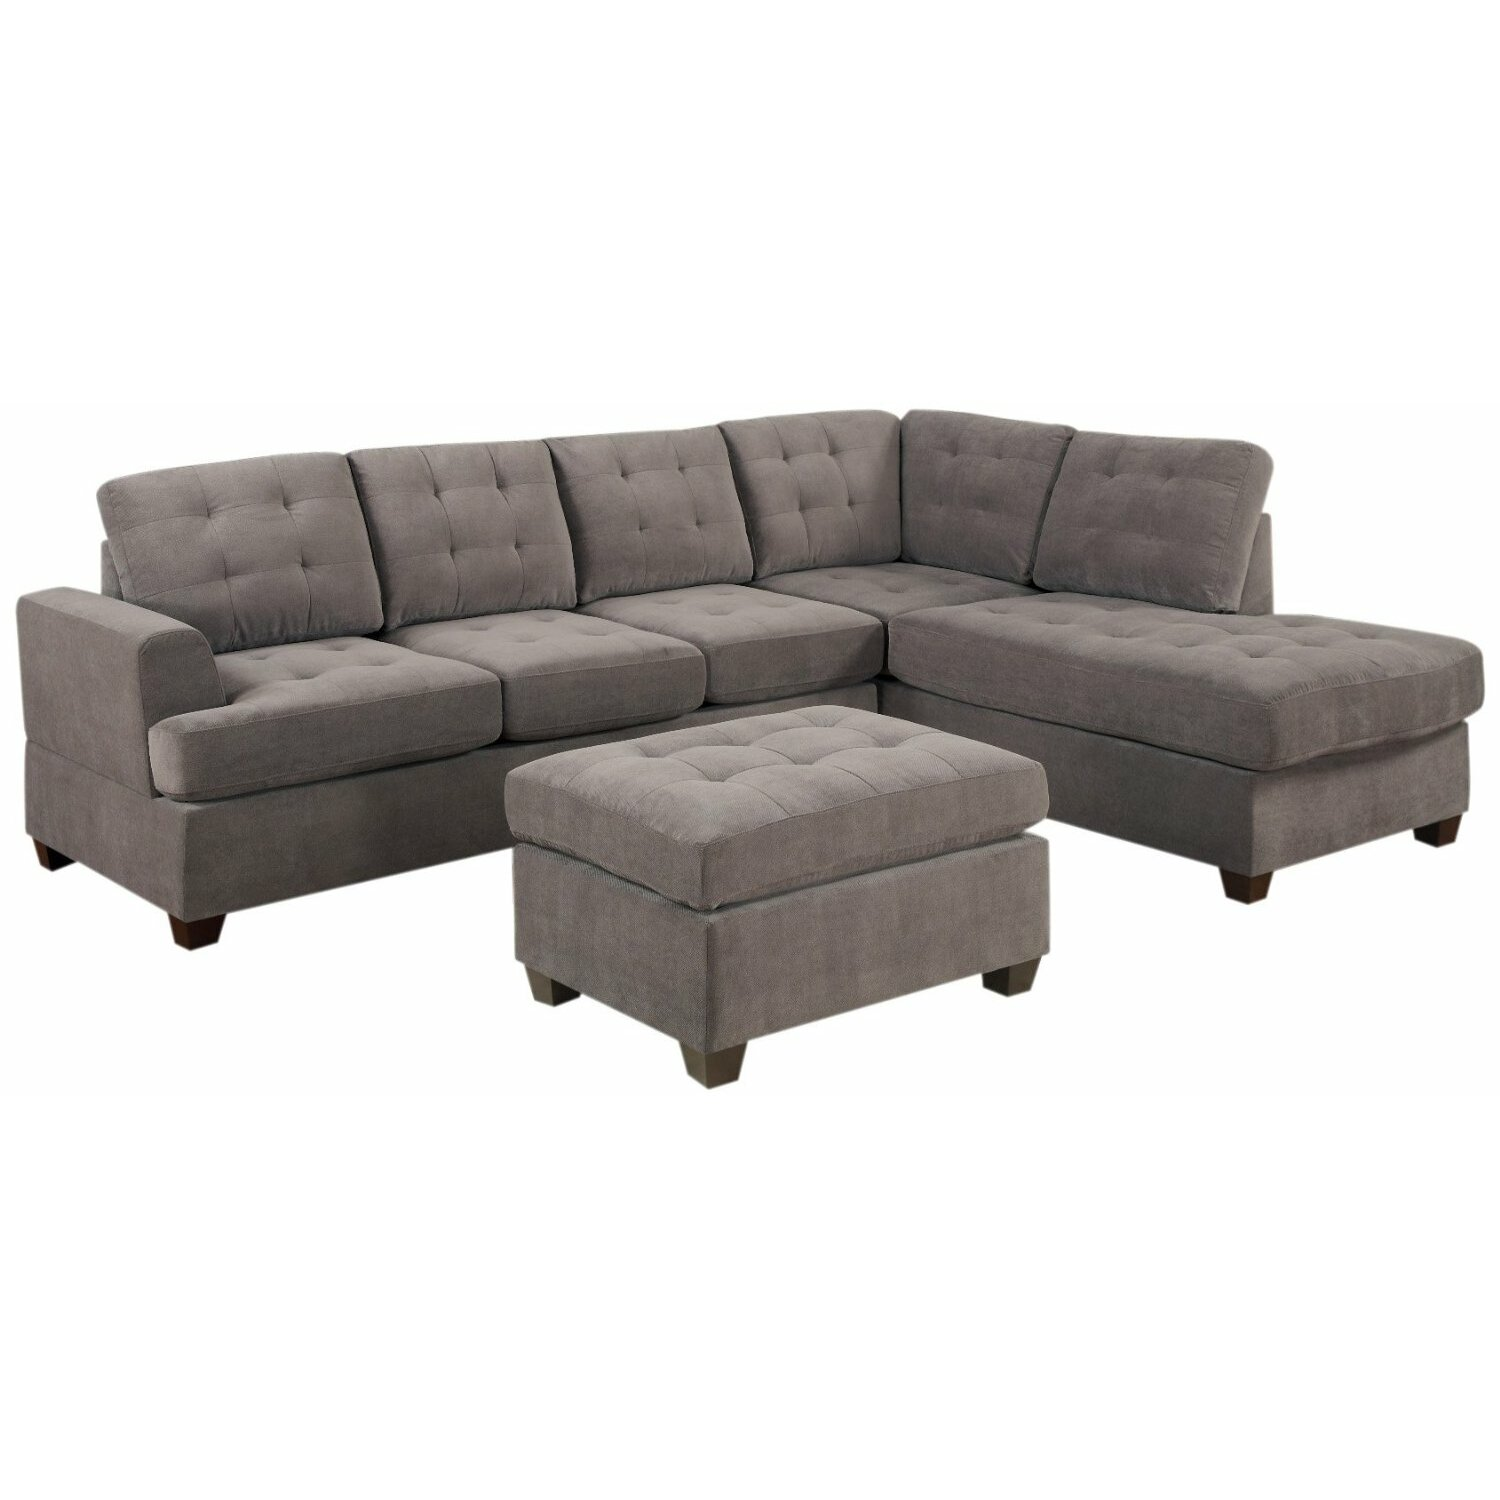 Reversible Chaise Sofa